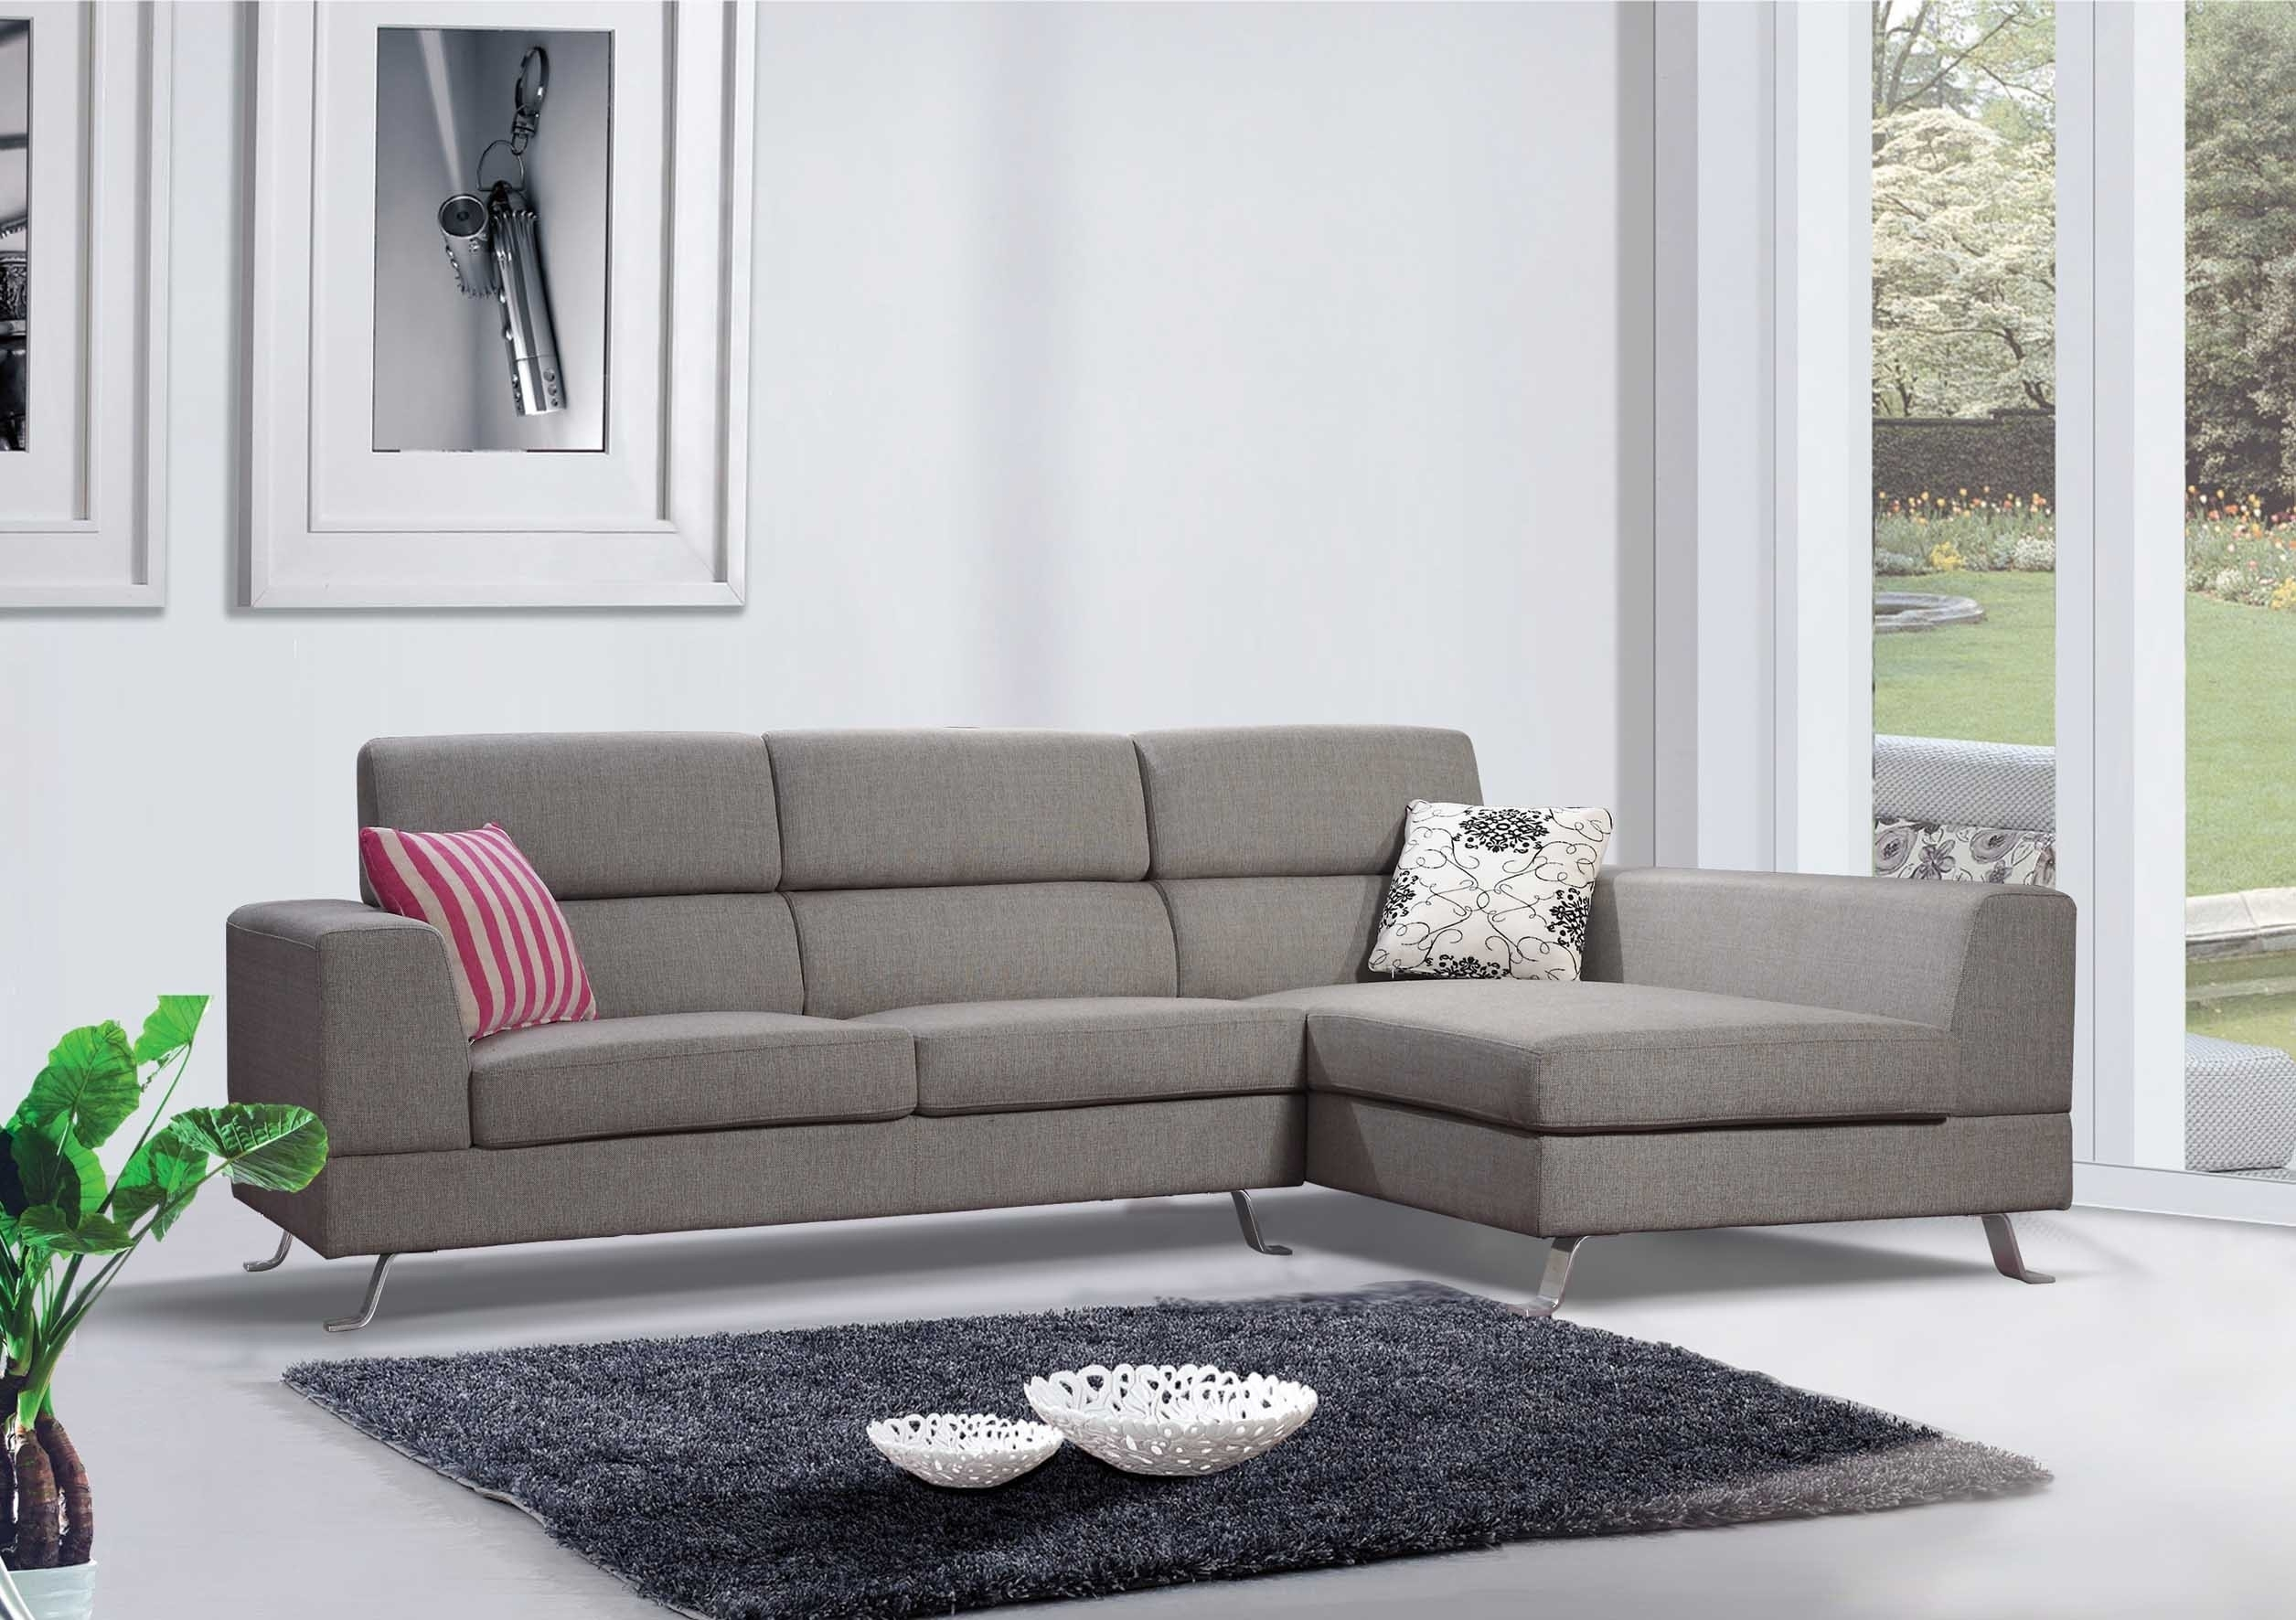 Furniture : Sectional Sofa 96X96 Sectional Sofa European Style for 96X96 Sectional Sofas (Image 5 of 10)